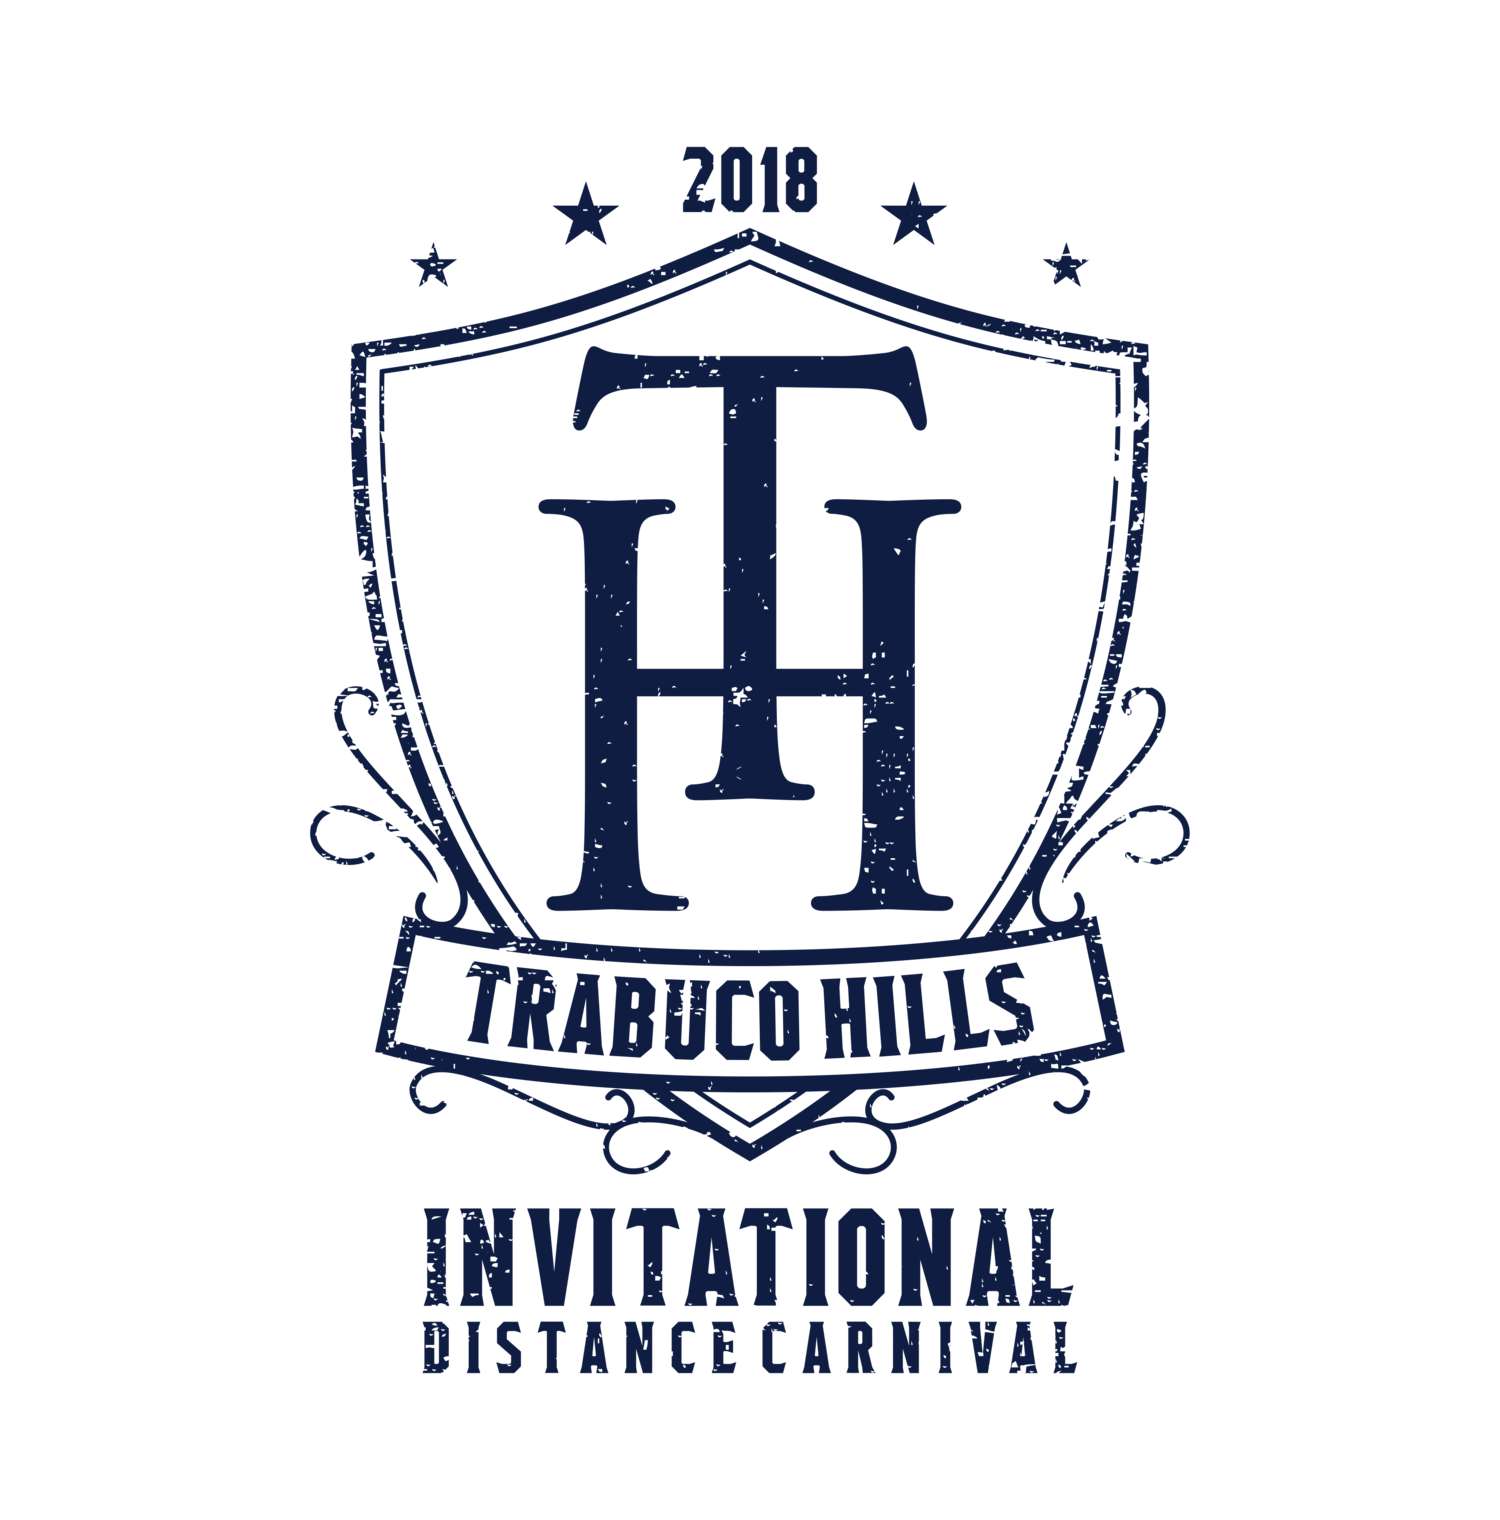 27th Trabuco Hills Invitational and Distance Carnival